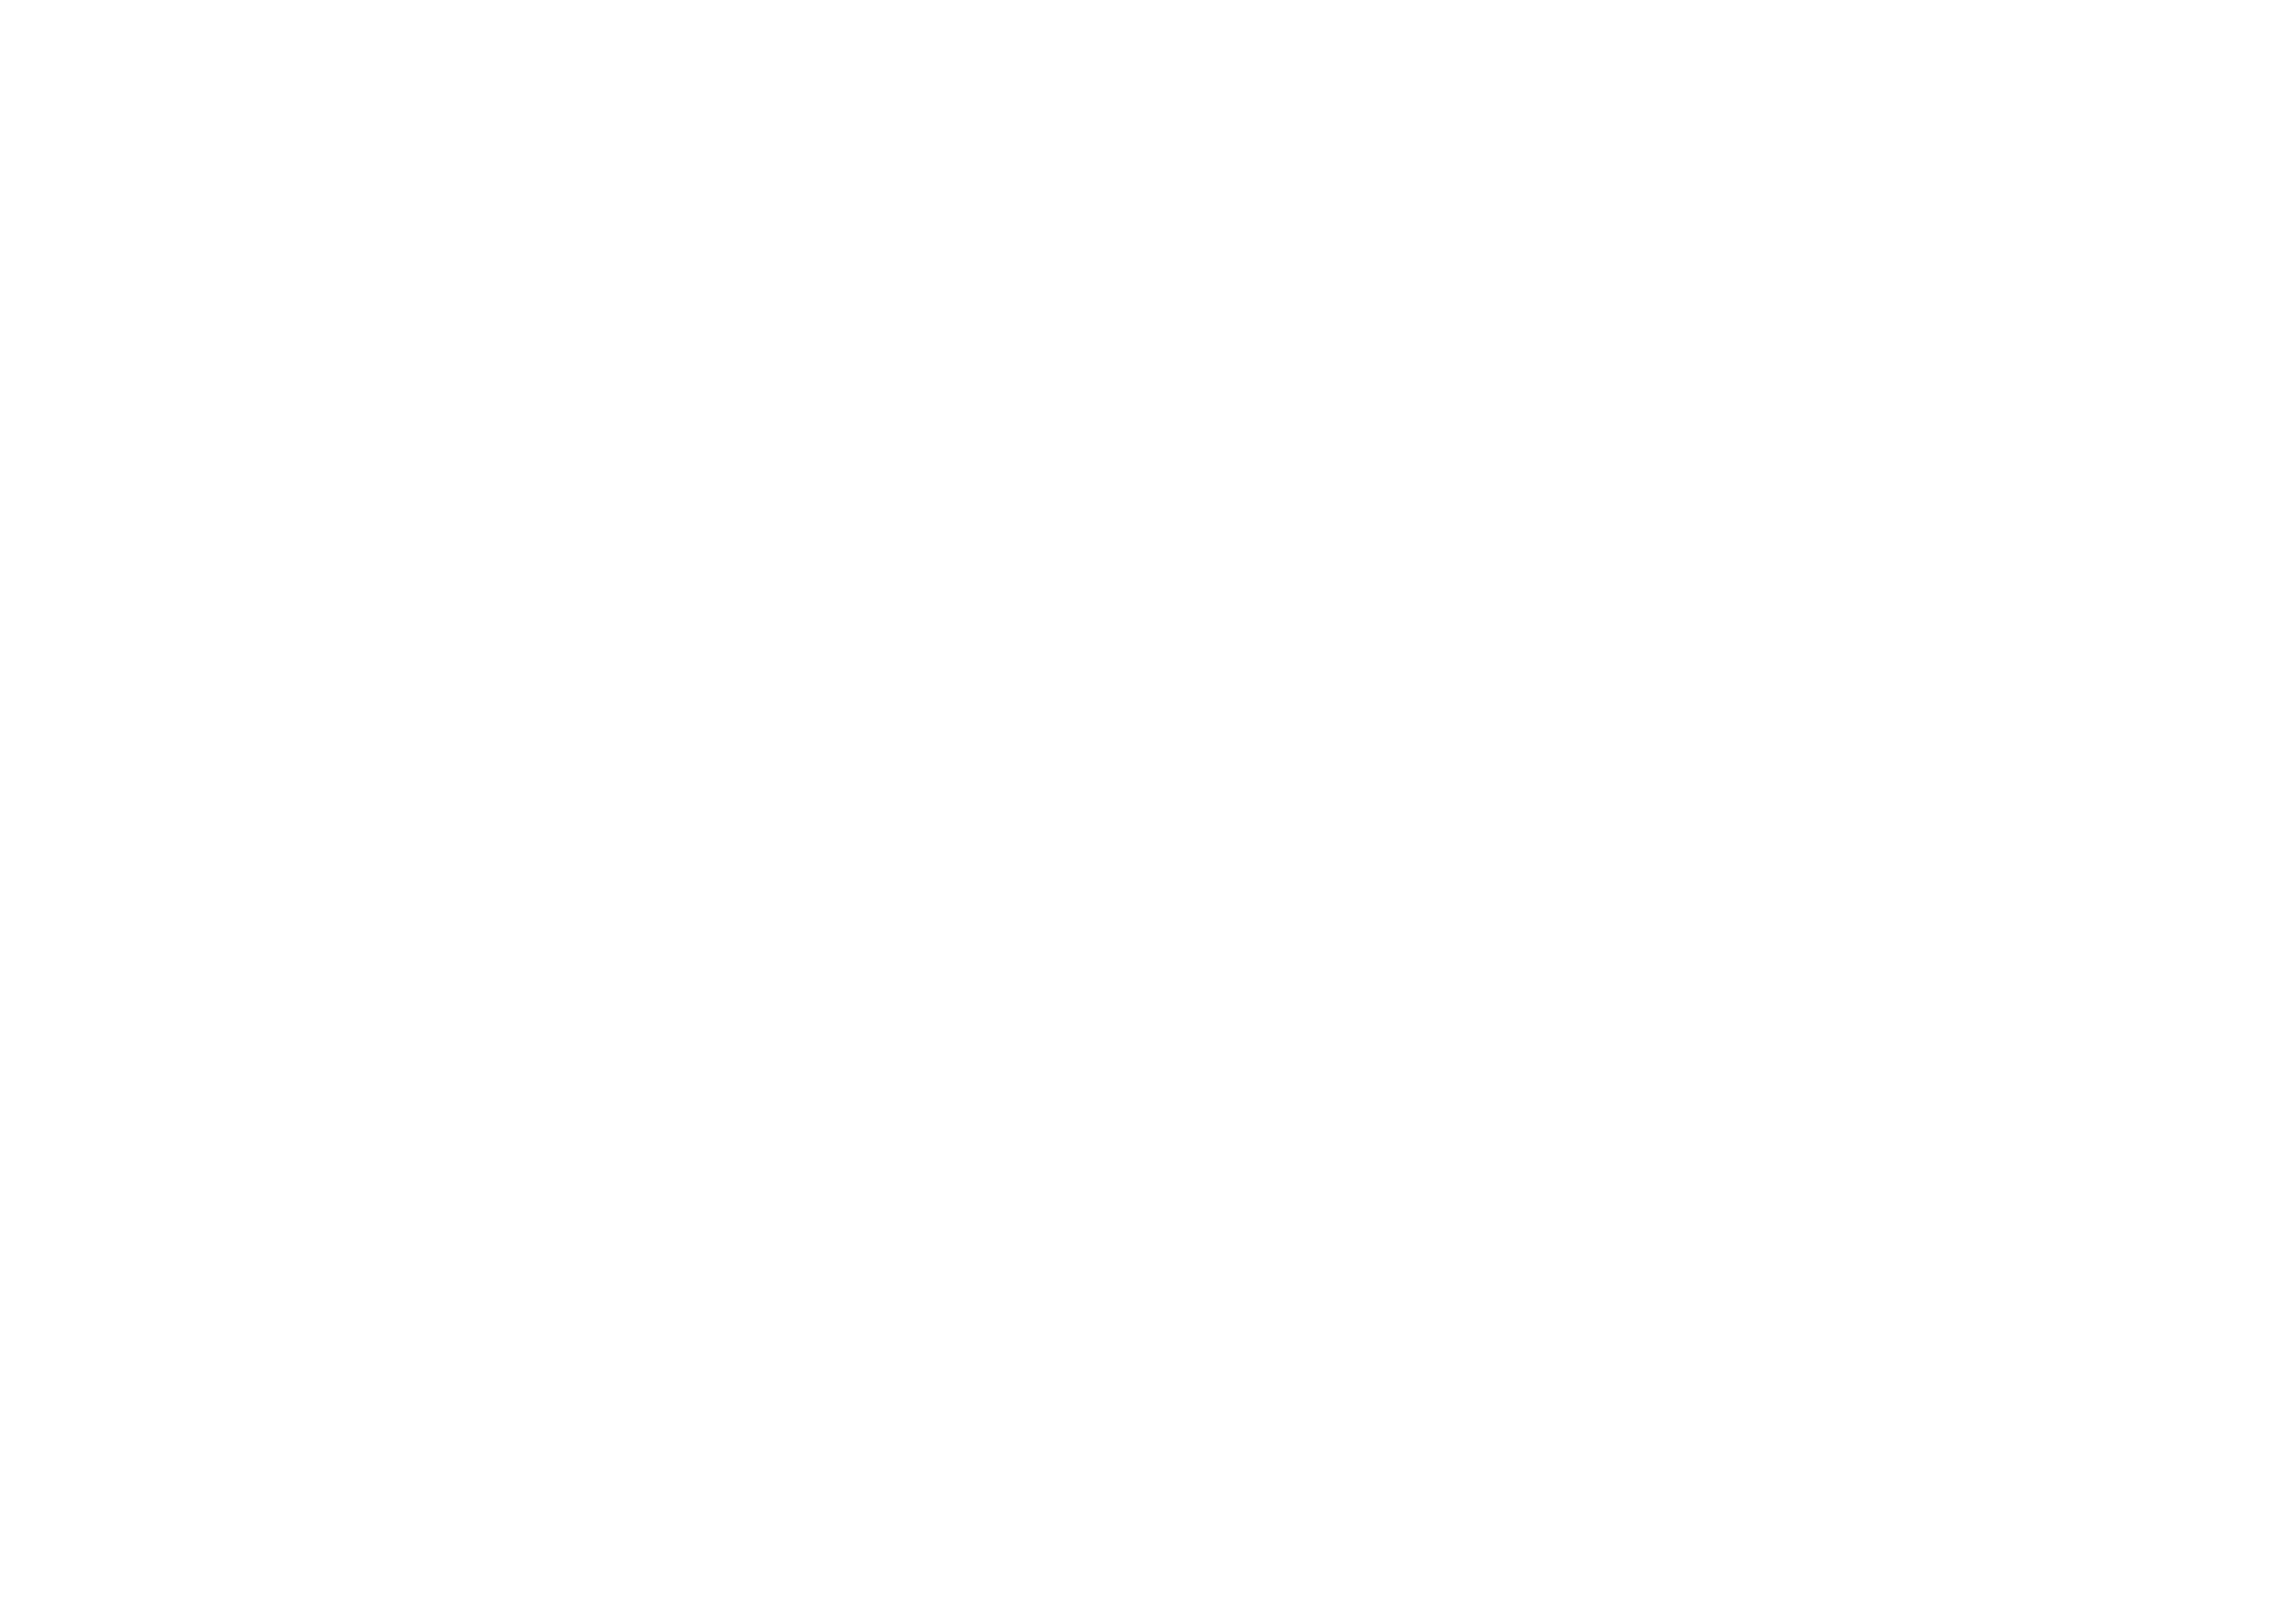 SC Global Tubular Solutions Logo